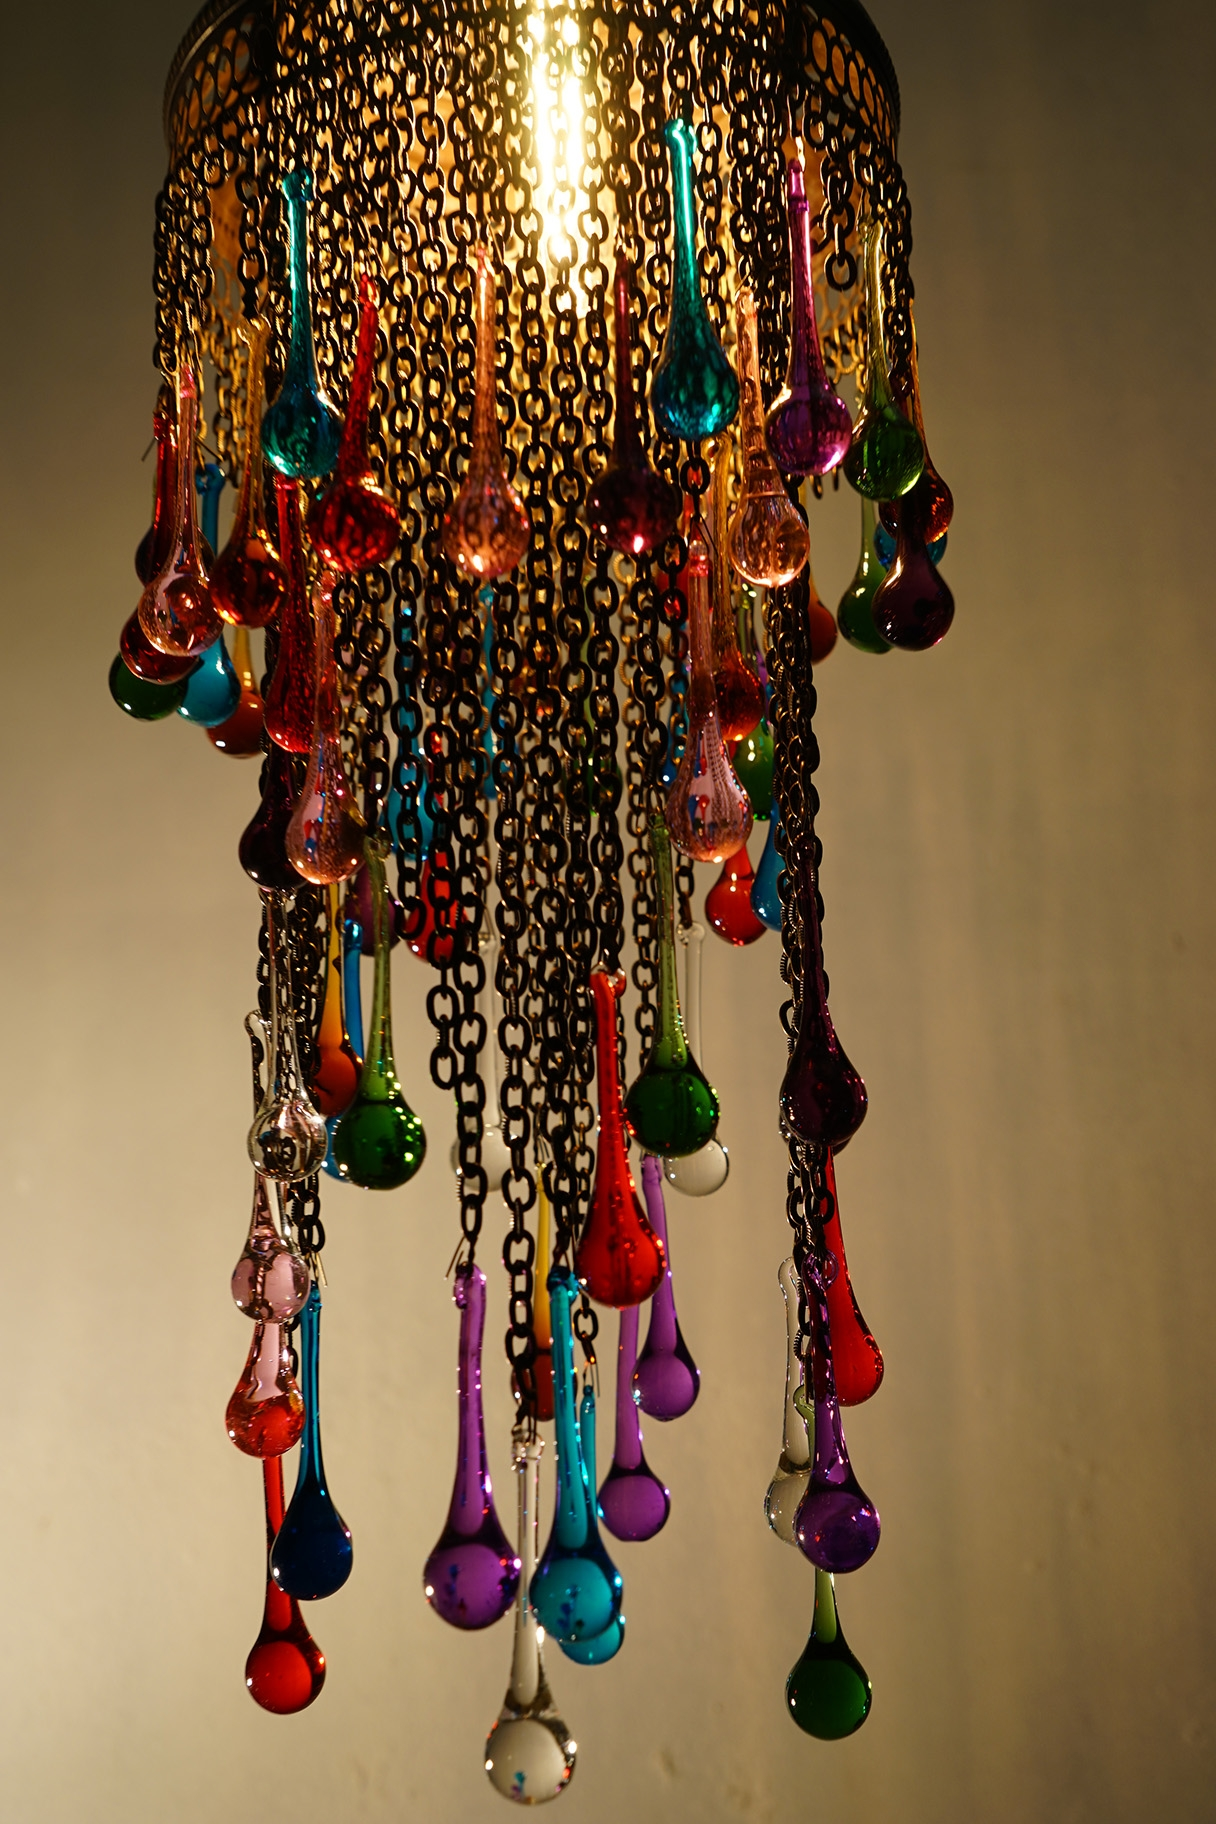 Coloured Glass Tear Drop Chandelier The Dancing Pixie Intended For Coloured Glass Chandelier (View 5 of 15)